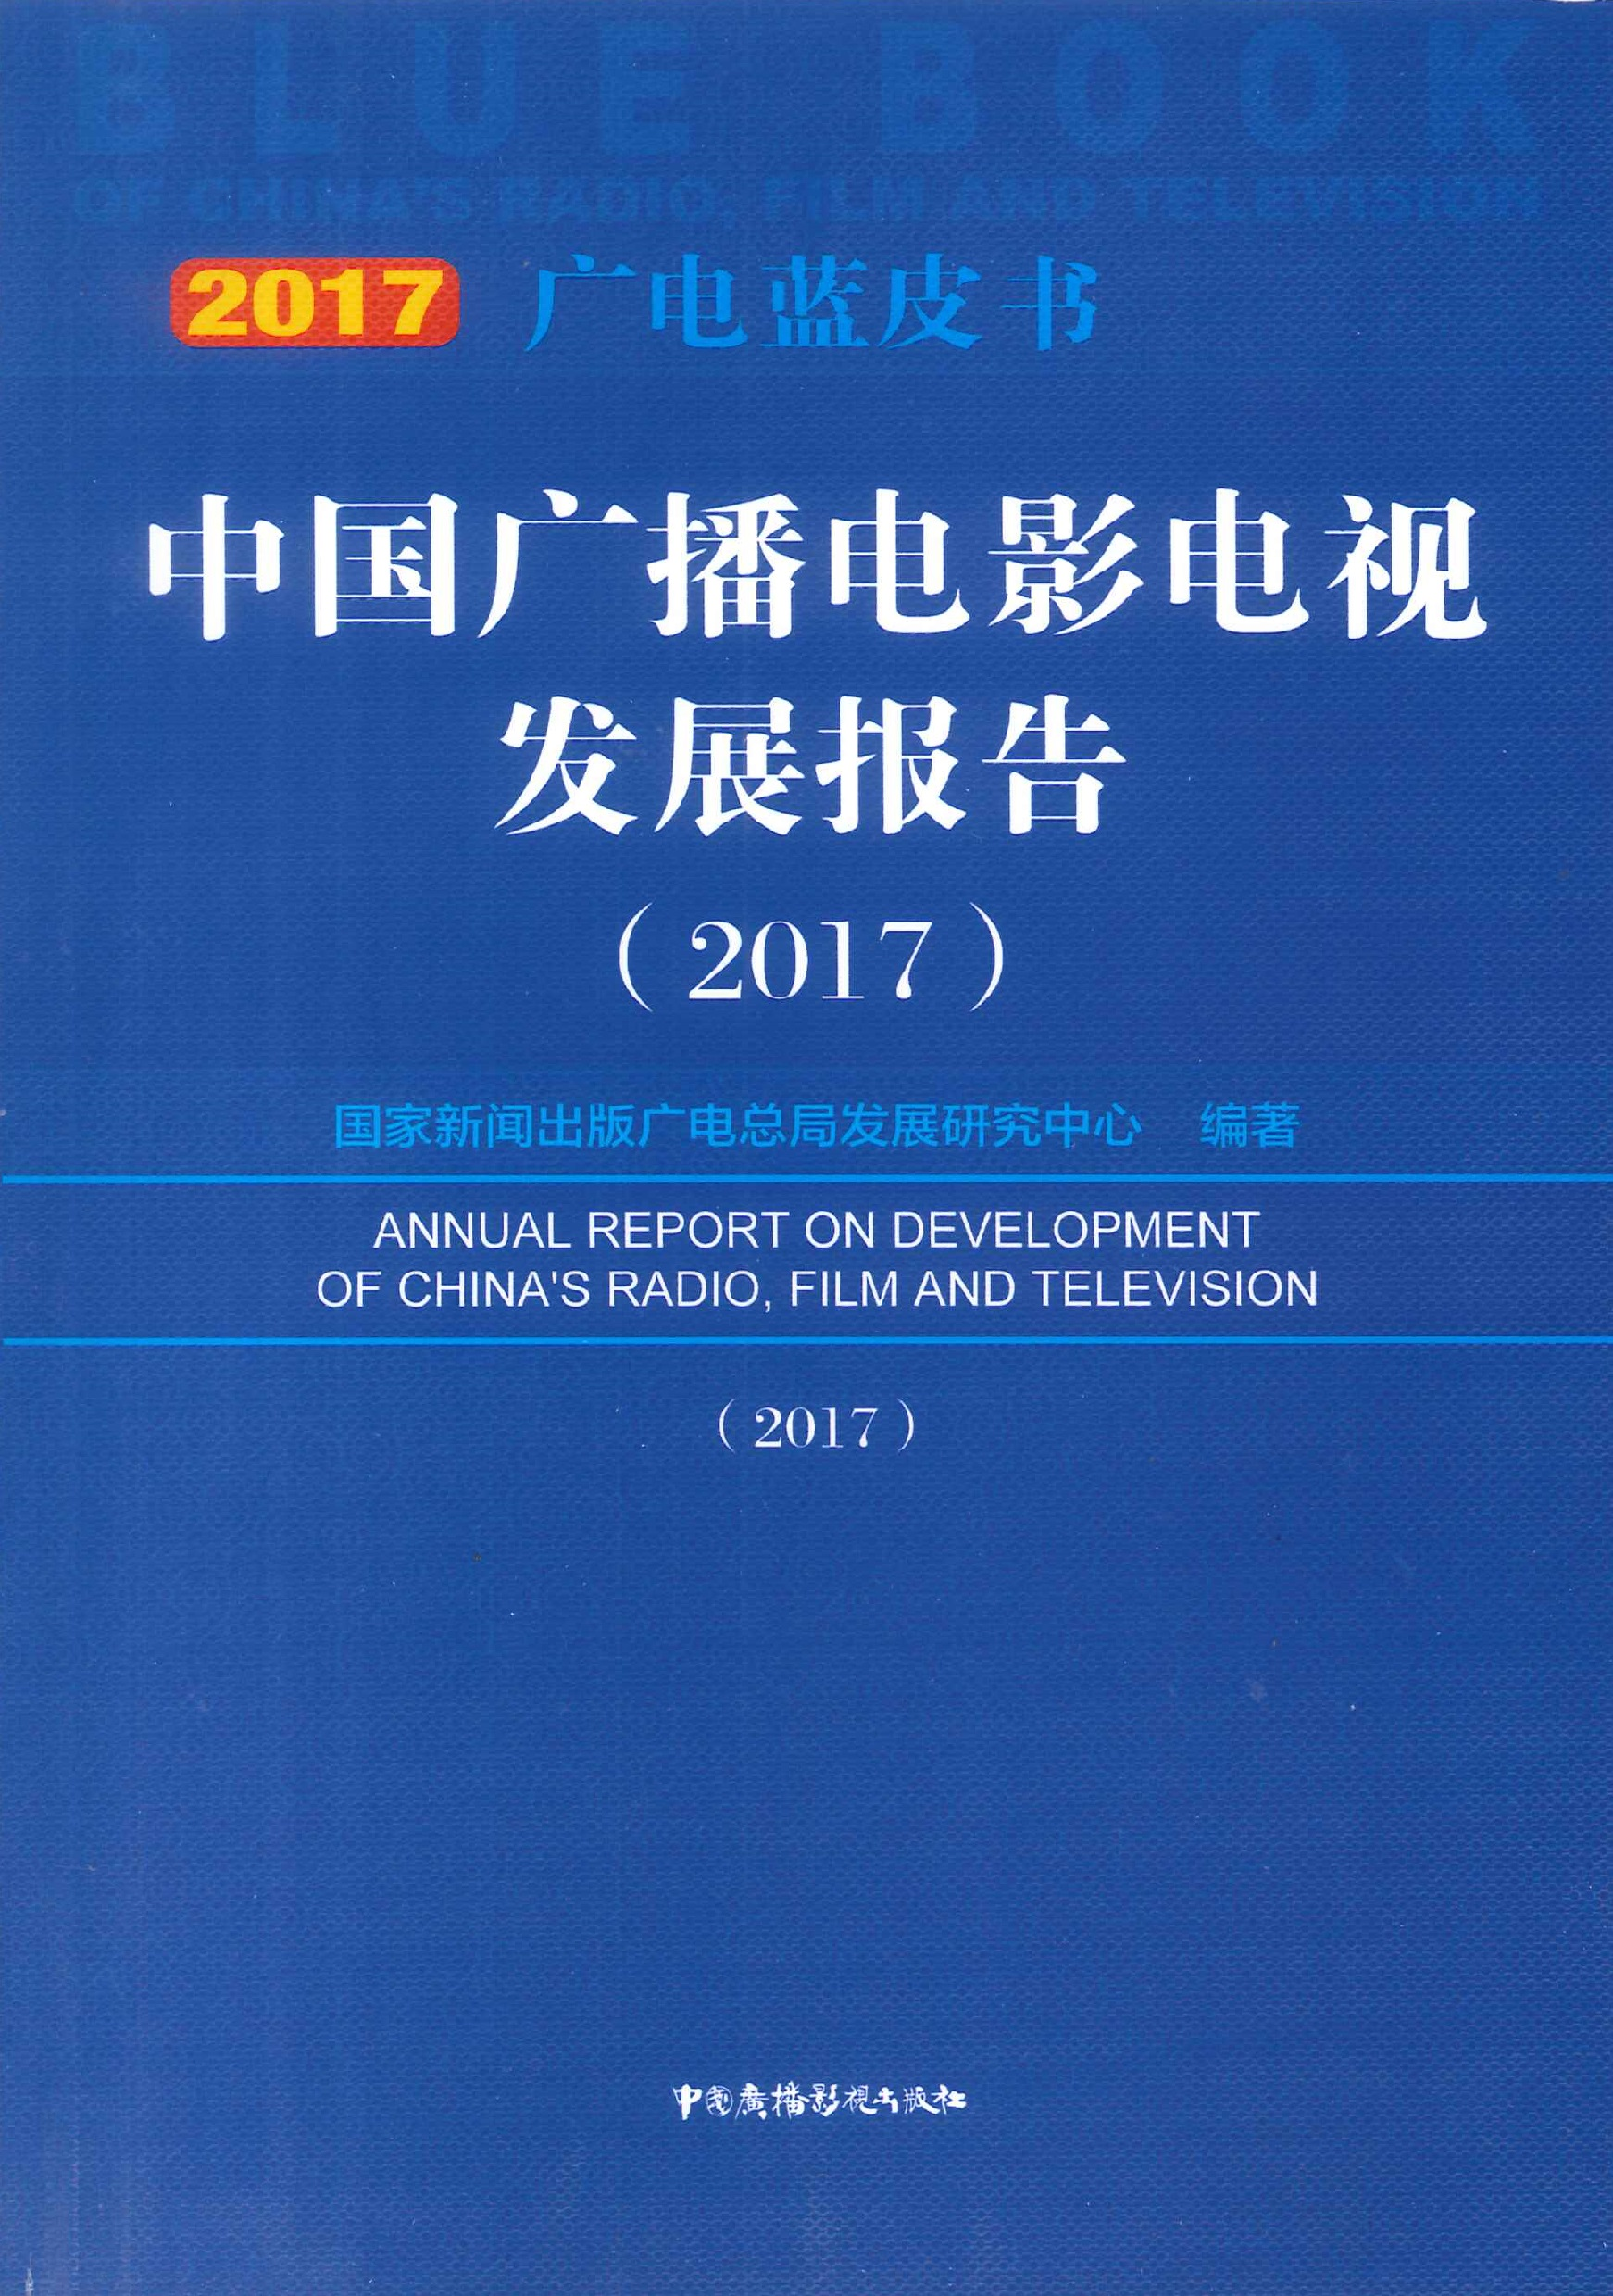 中国广播电影电视发展报告=Annual report on development of China